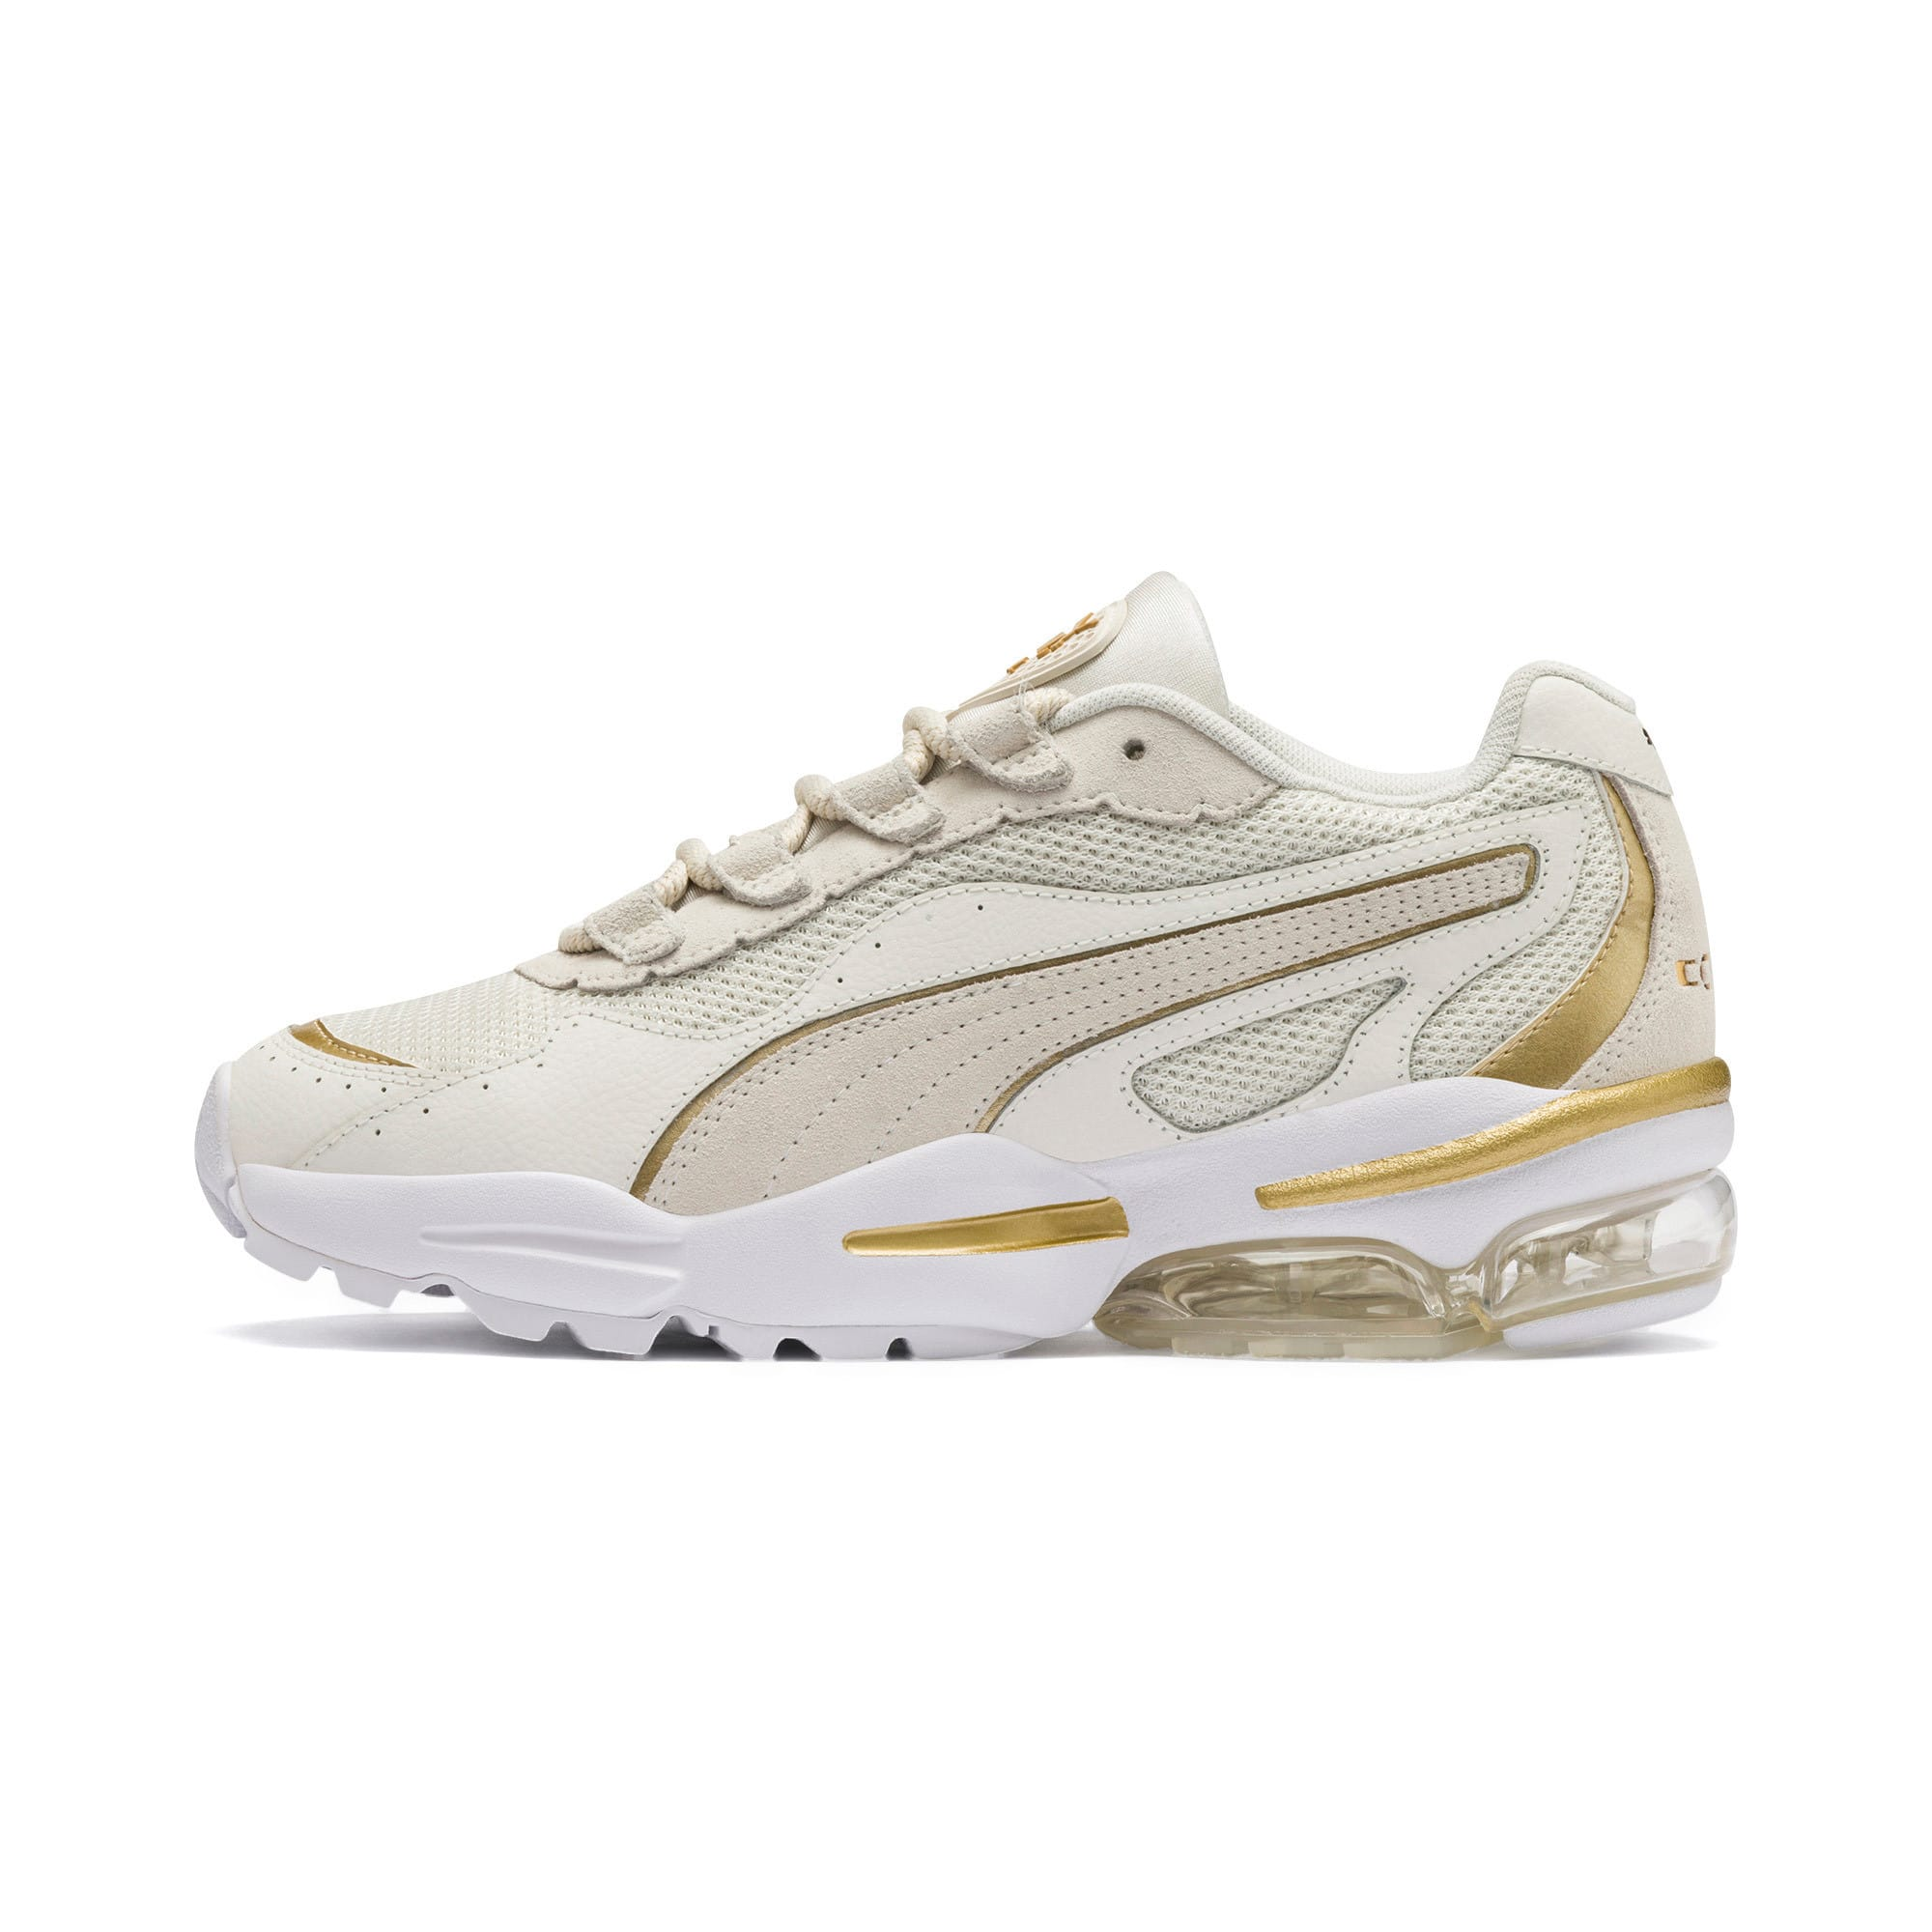 Thumbnail 1 of CELL Stellar Soft sportschoenen voor dames, Puma White-Puma Team Gold, medium